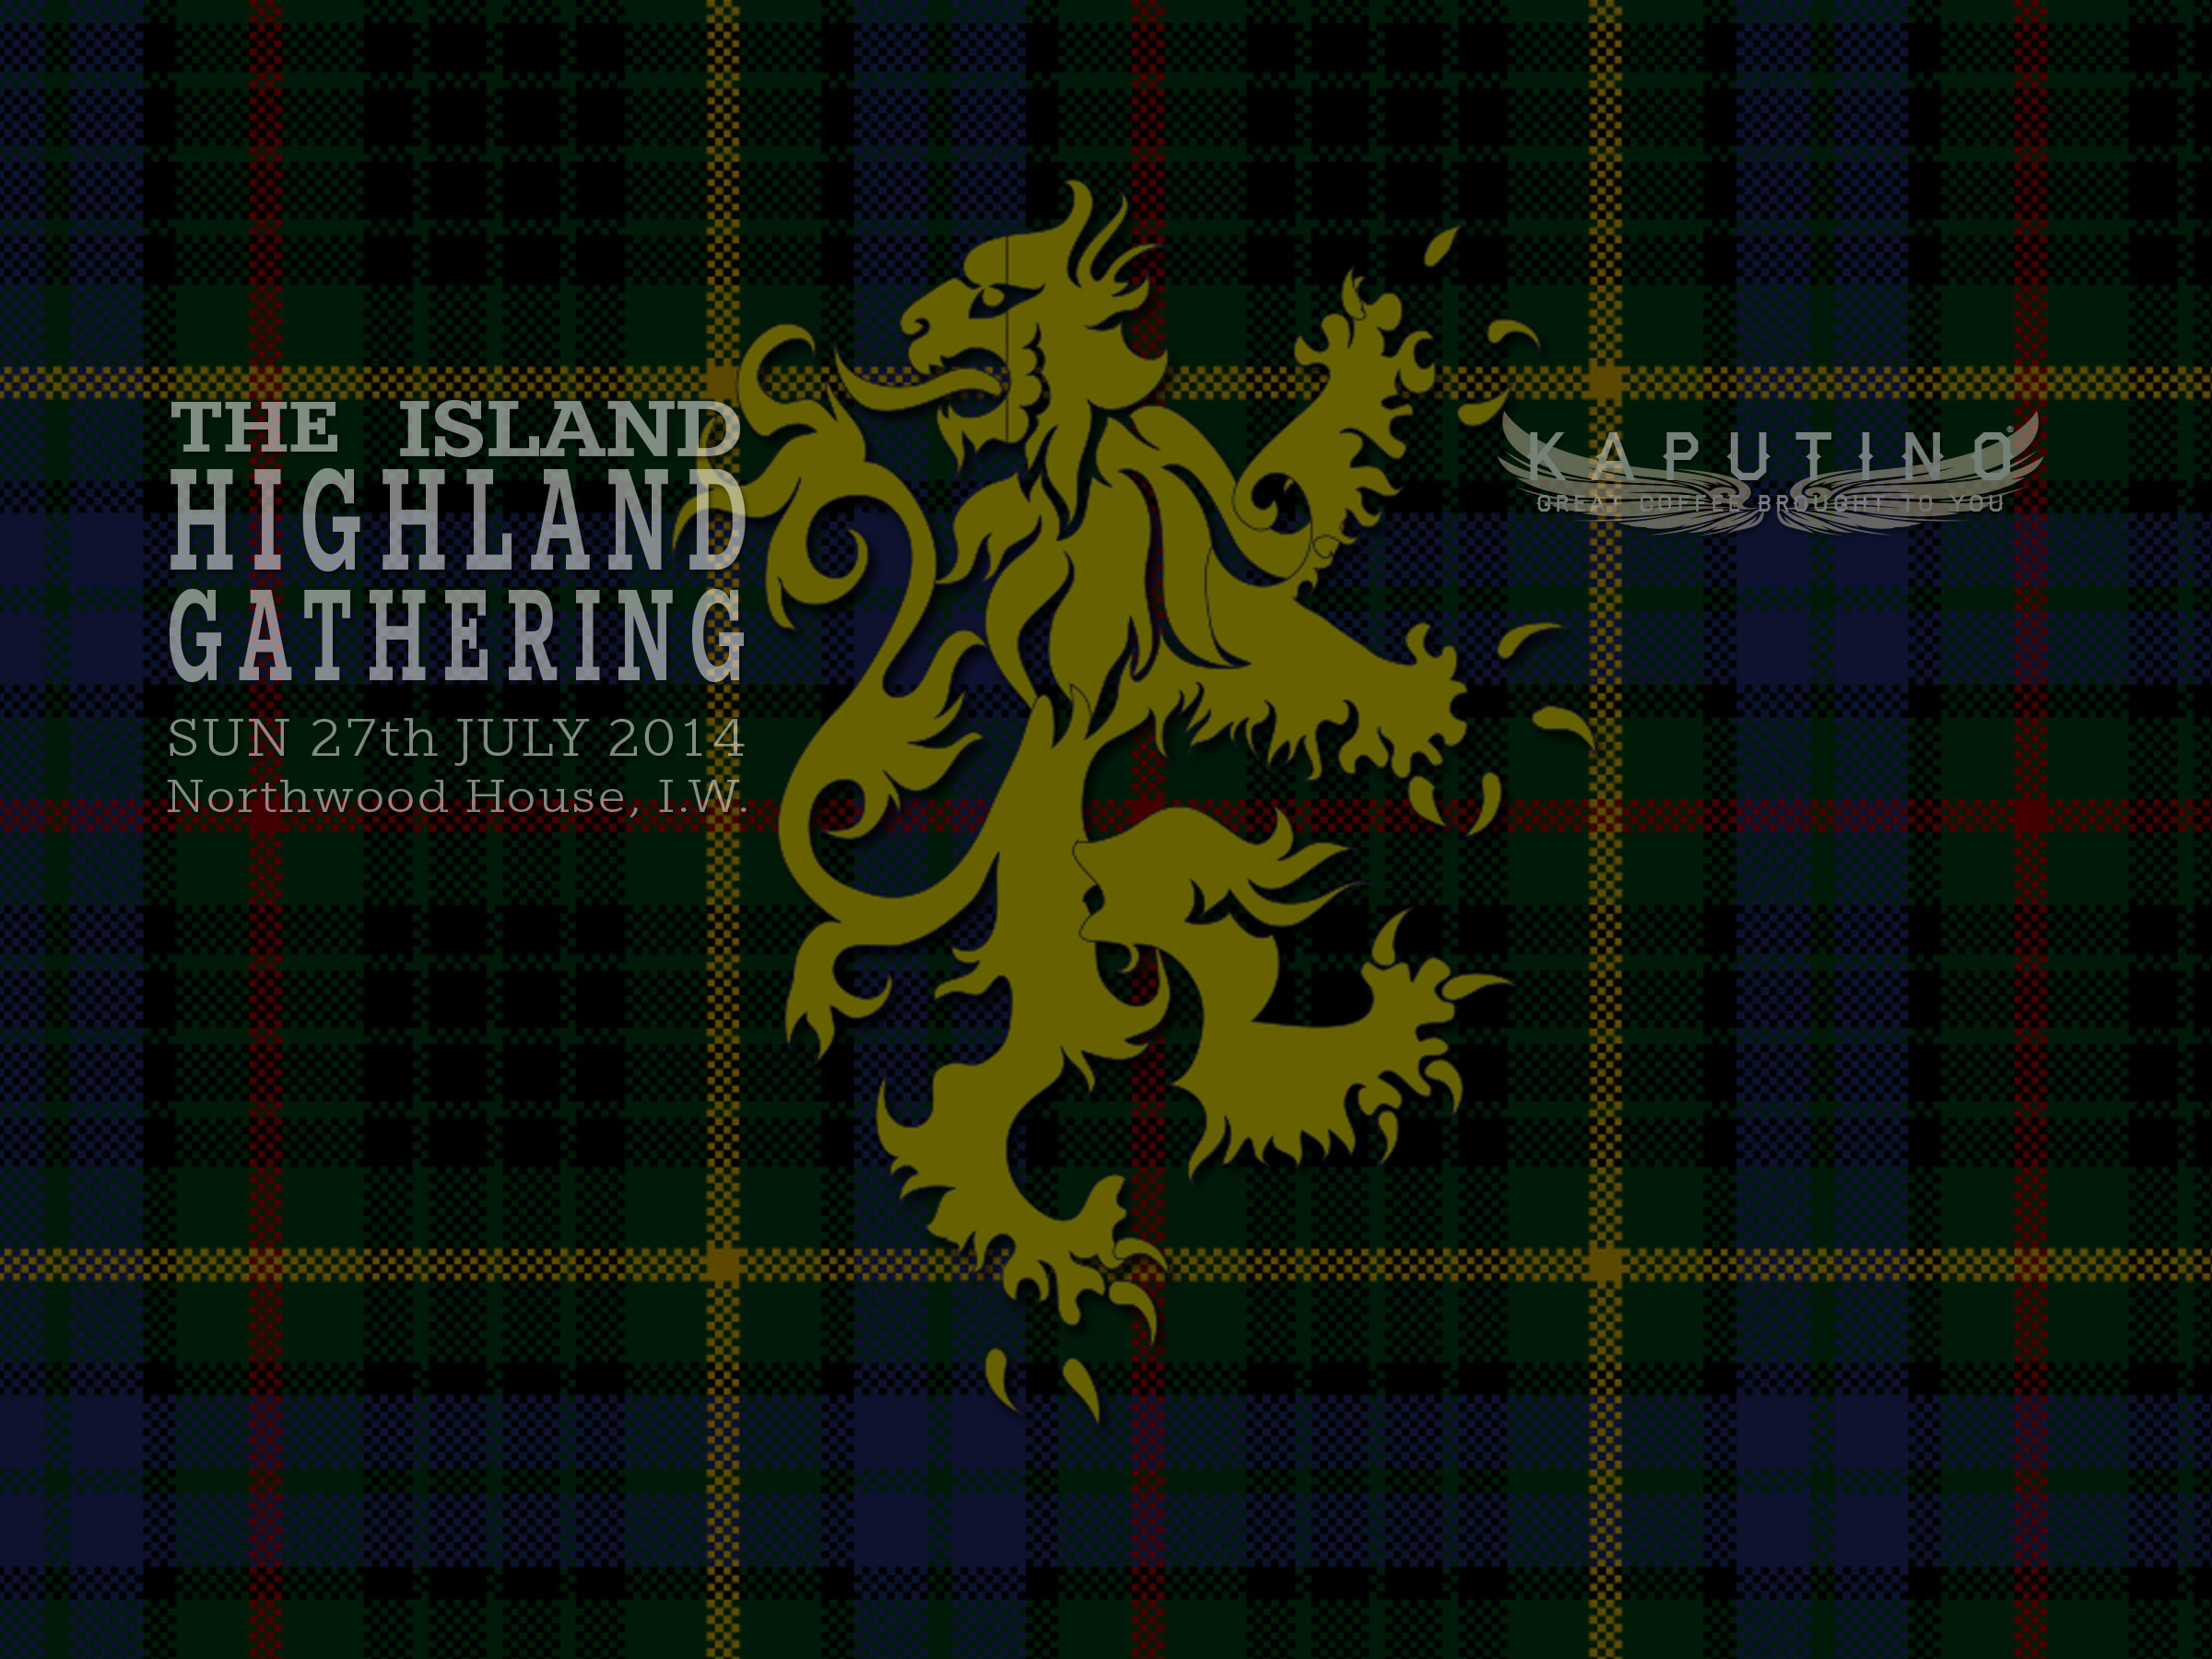 Island Highland Gathering 2014 with Kaputino coffee van